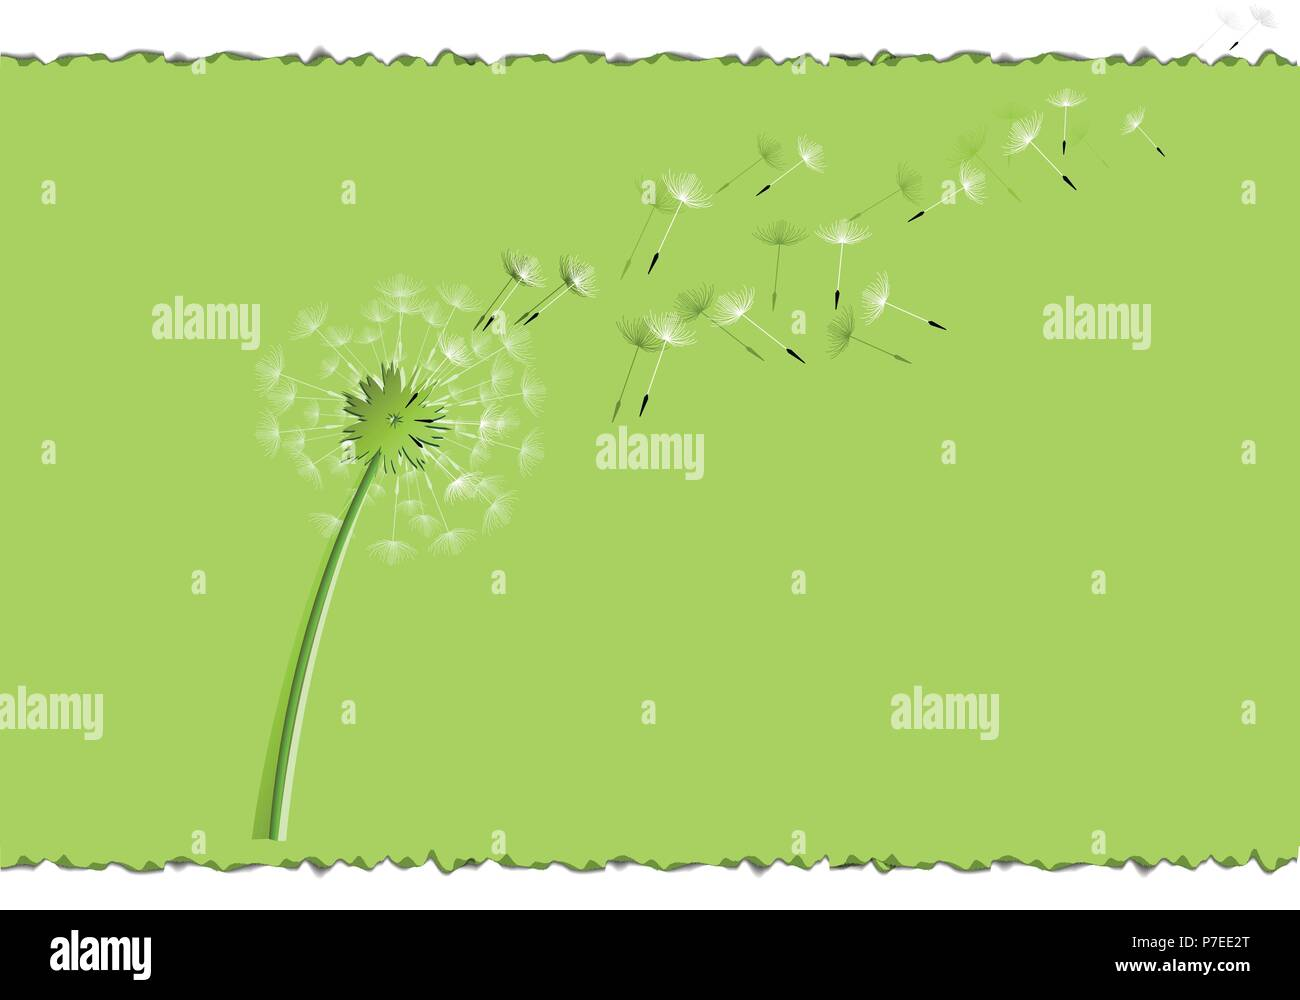 flying dandelion seeds on a green leaf over a white background - Stock Vector